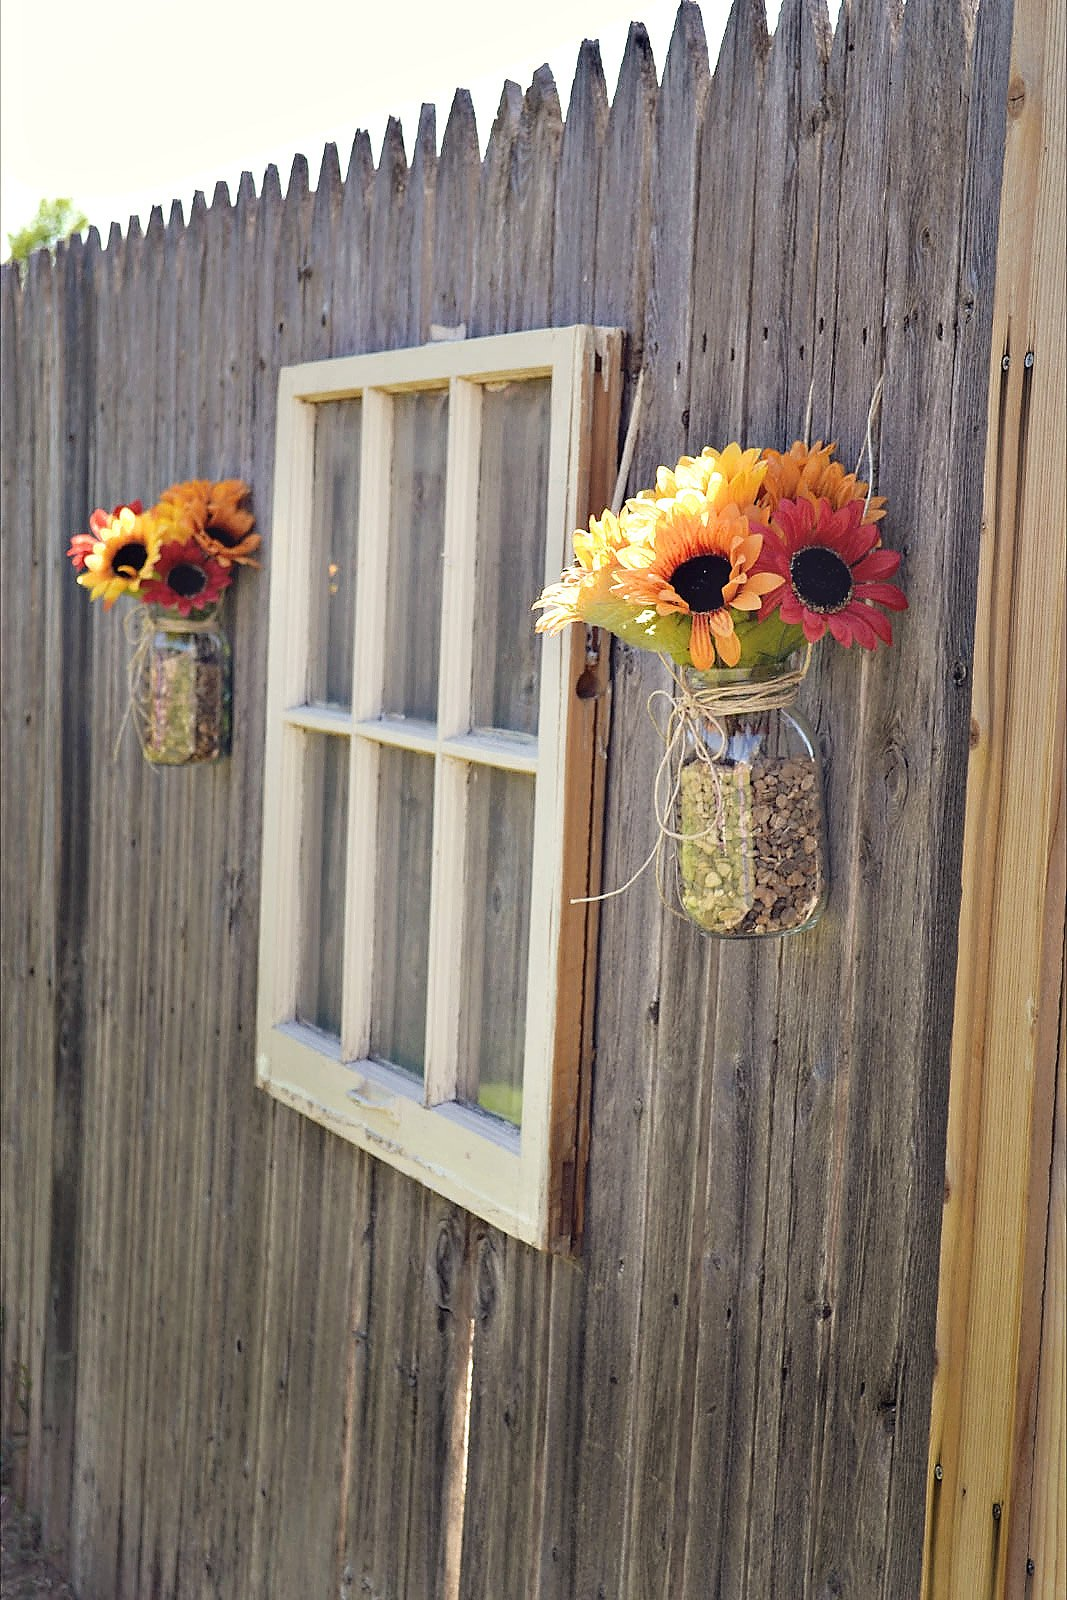 30 Cool Garden Fence Decoration Ideas  Page 2 of 5